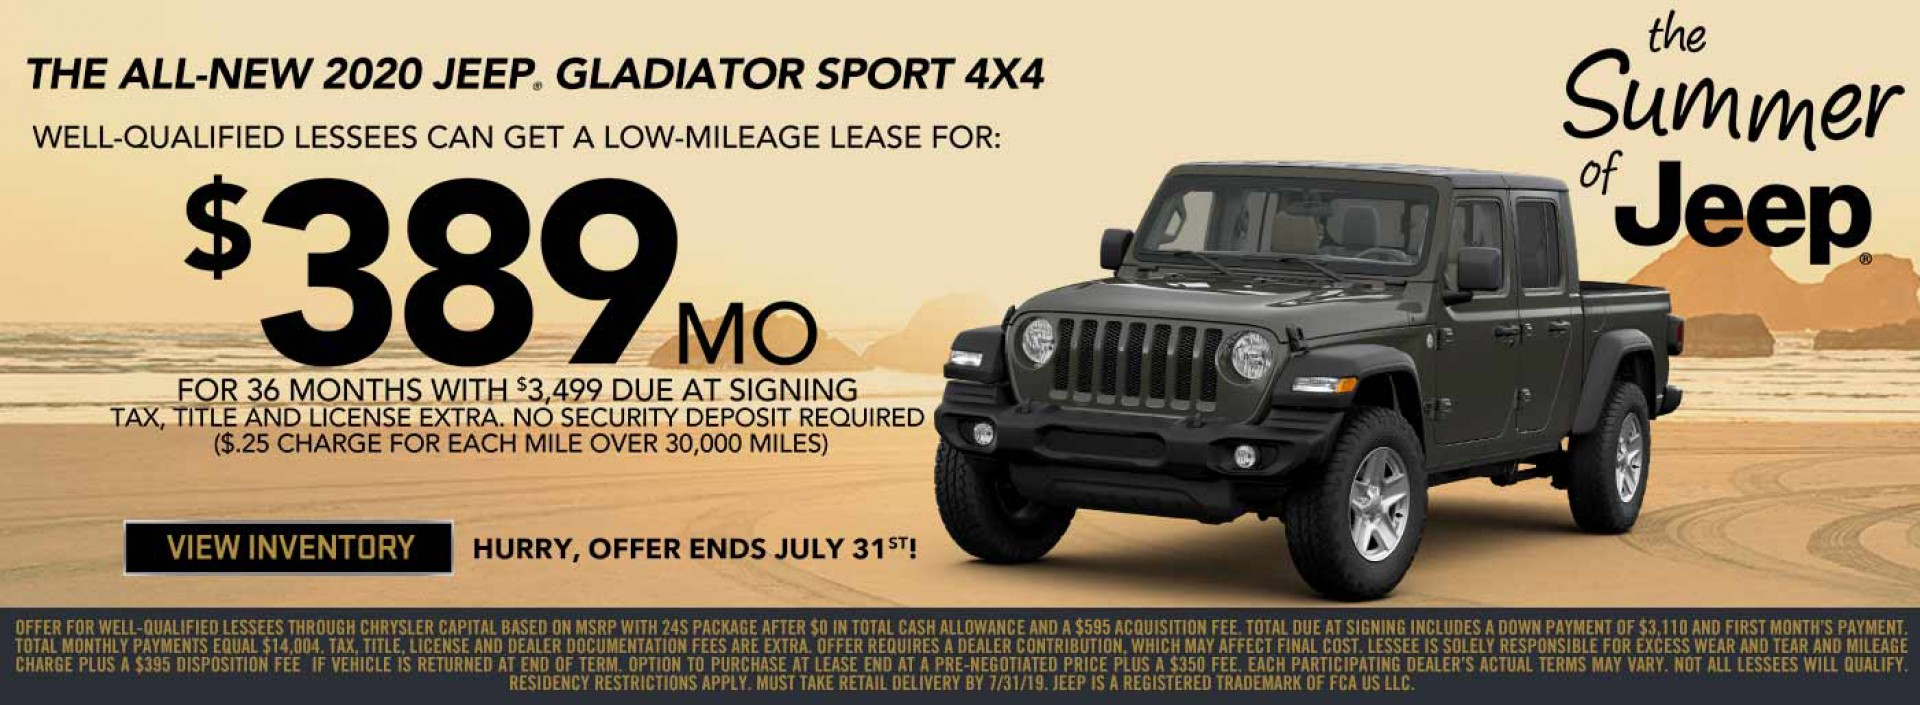 MWBC-2020Jeep-Gladiator-JULY-Lease